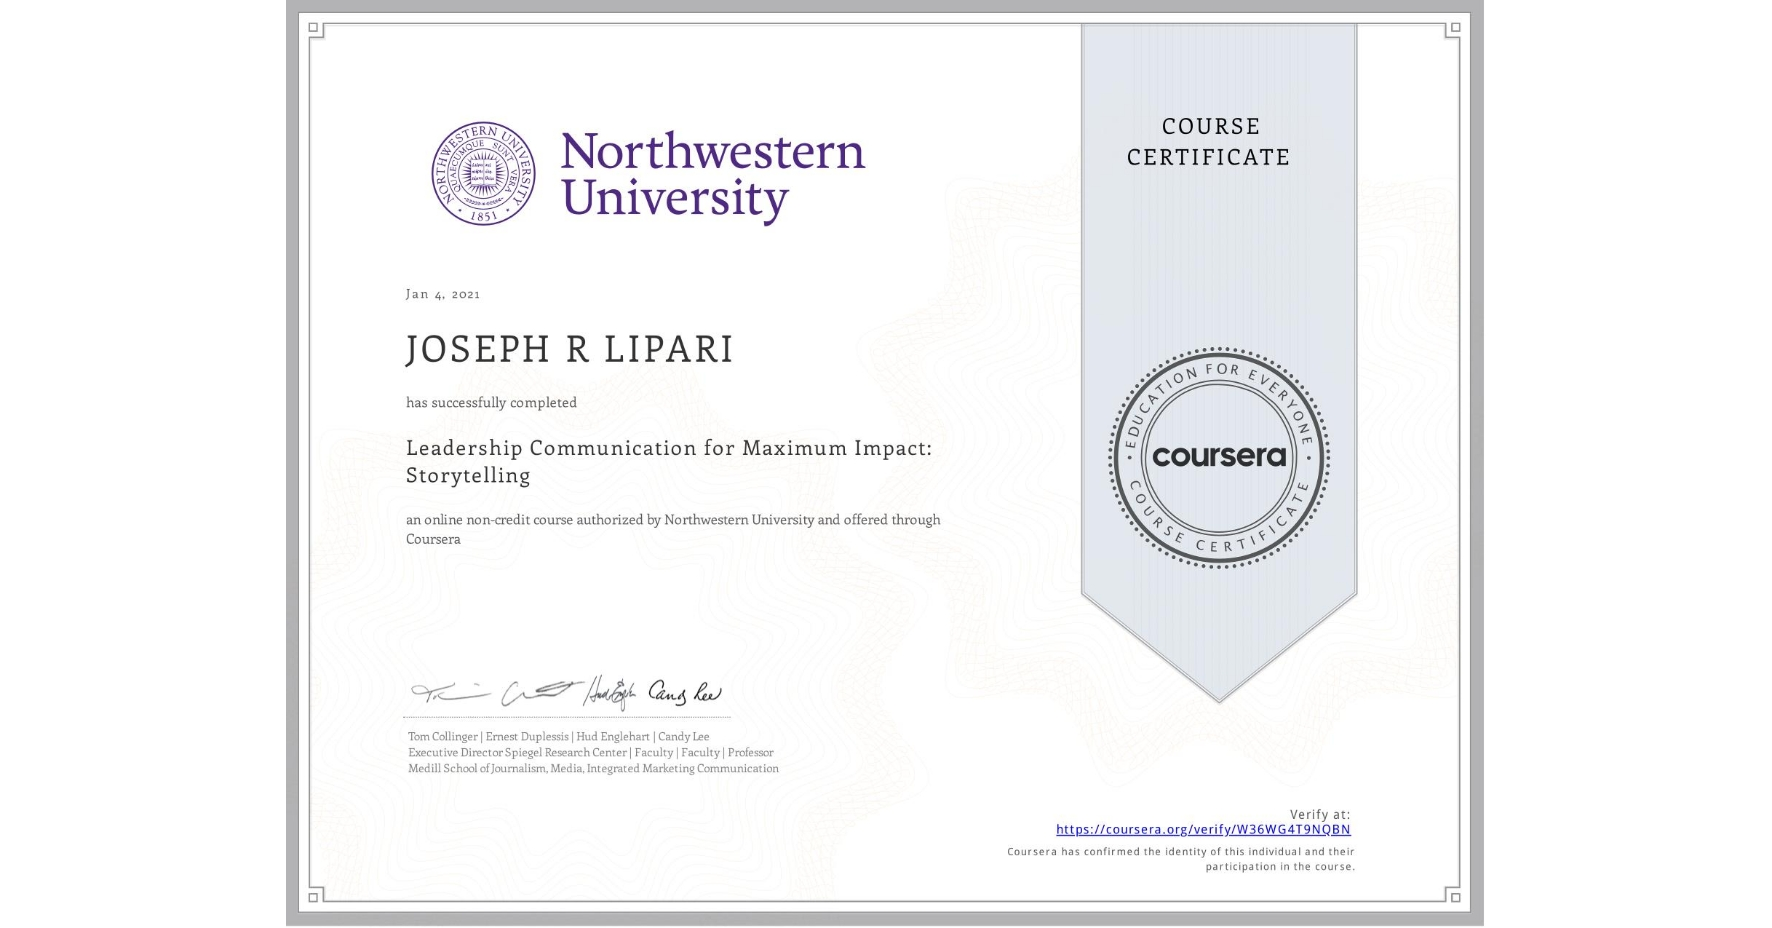 View certificate for JOSEPH R  LIPARI, Leadership Communication for Maximum Impact: Storytelling, an online non-credit course authorized by Northwestern University and offered through Coursera